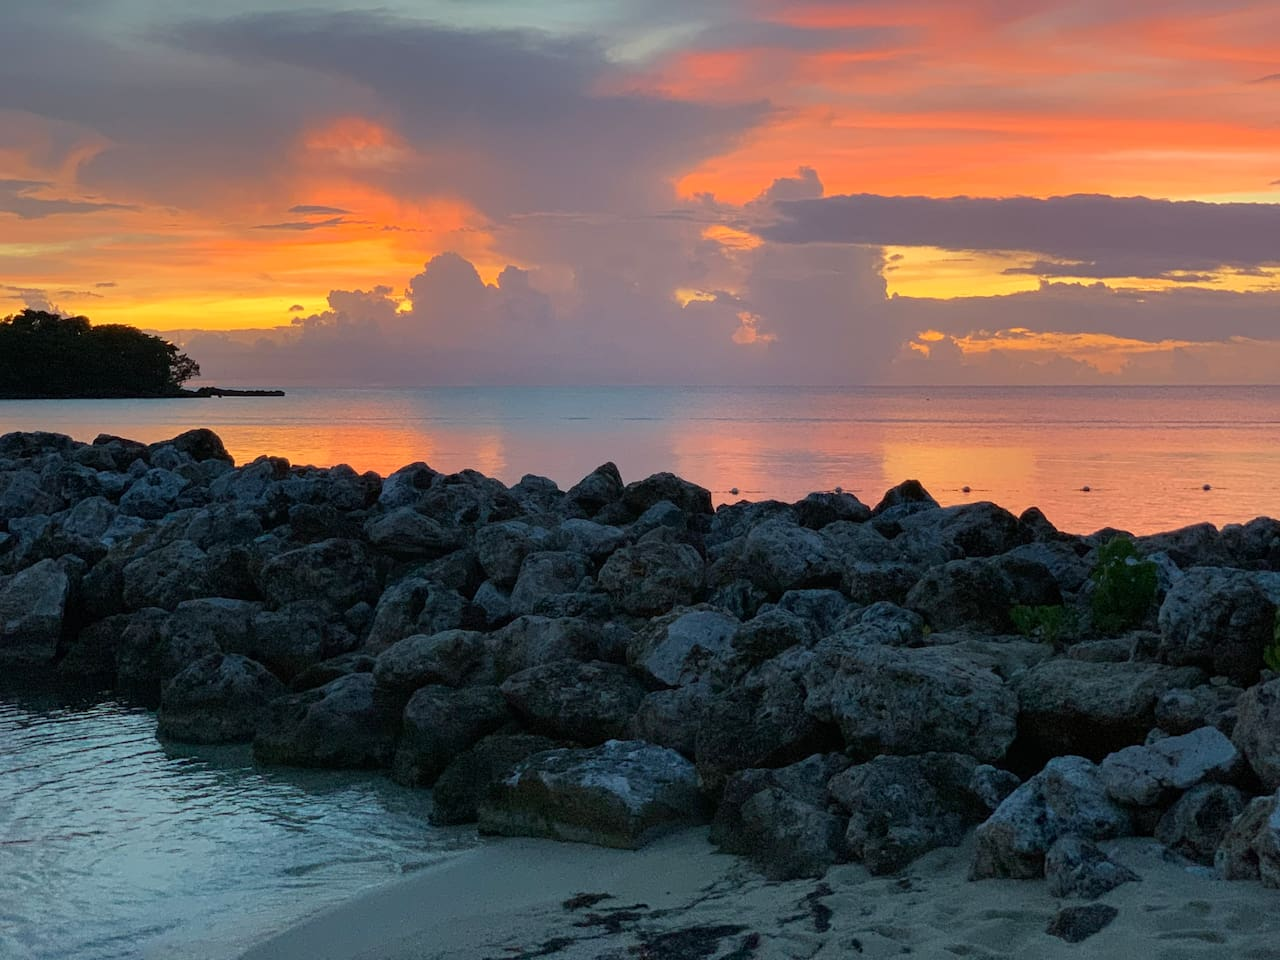 Negril Sunset. Favorite time of Day